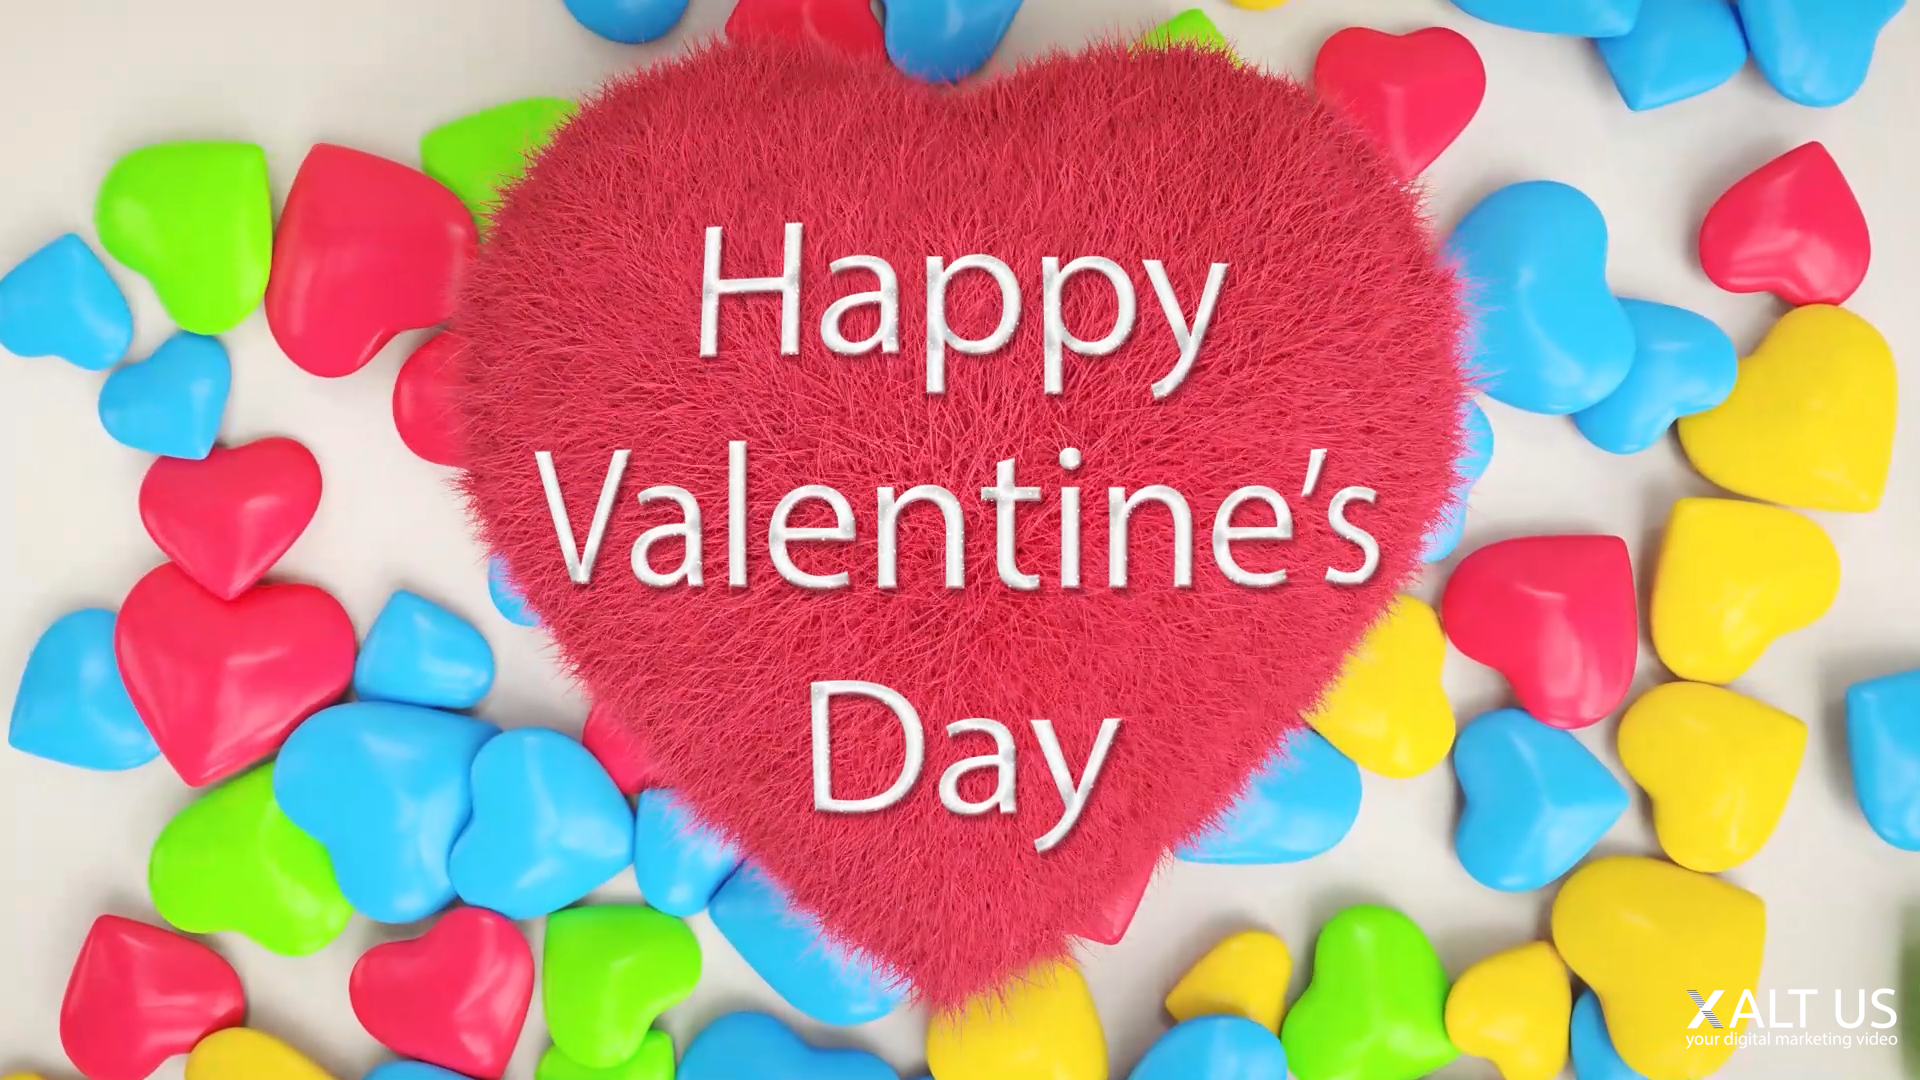 Free Valentines Day Greetings Video Beating Heart Greeting Card Whatsapp Down In 2020 Valentines Day Greetings Valentine Day Video Valentines Day Goals